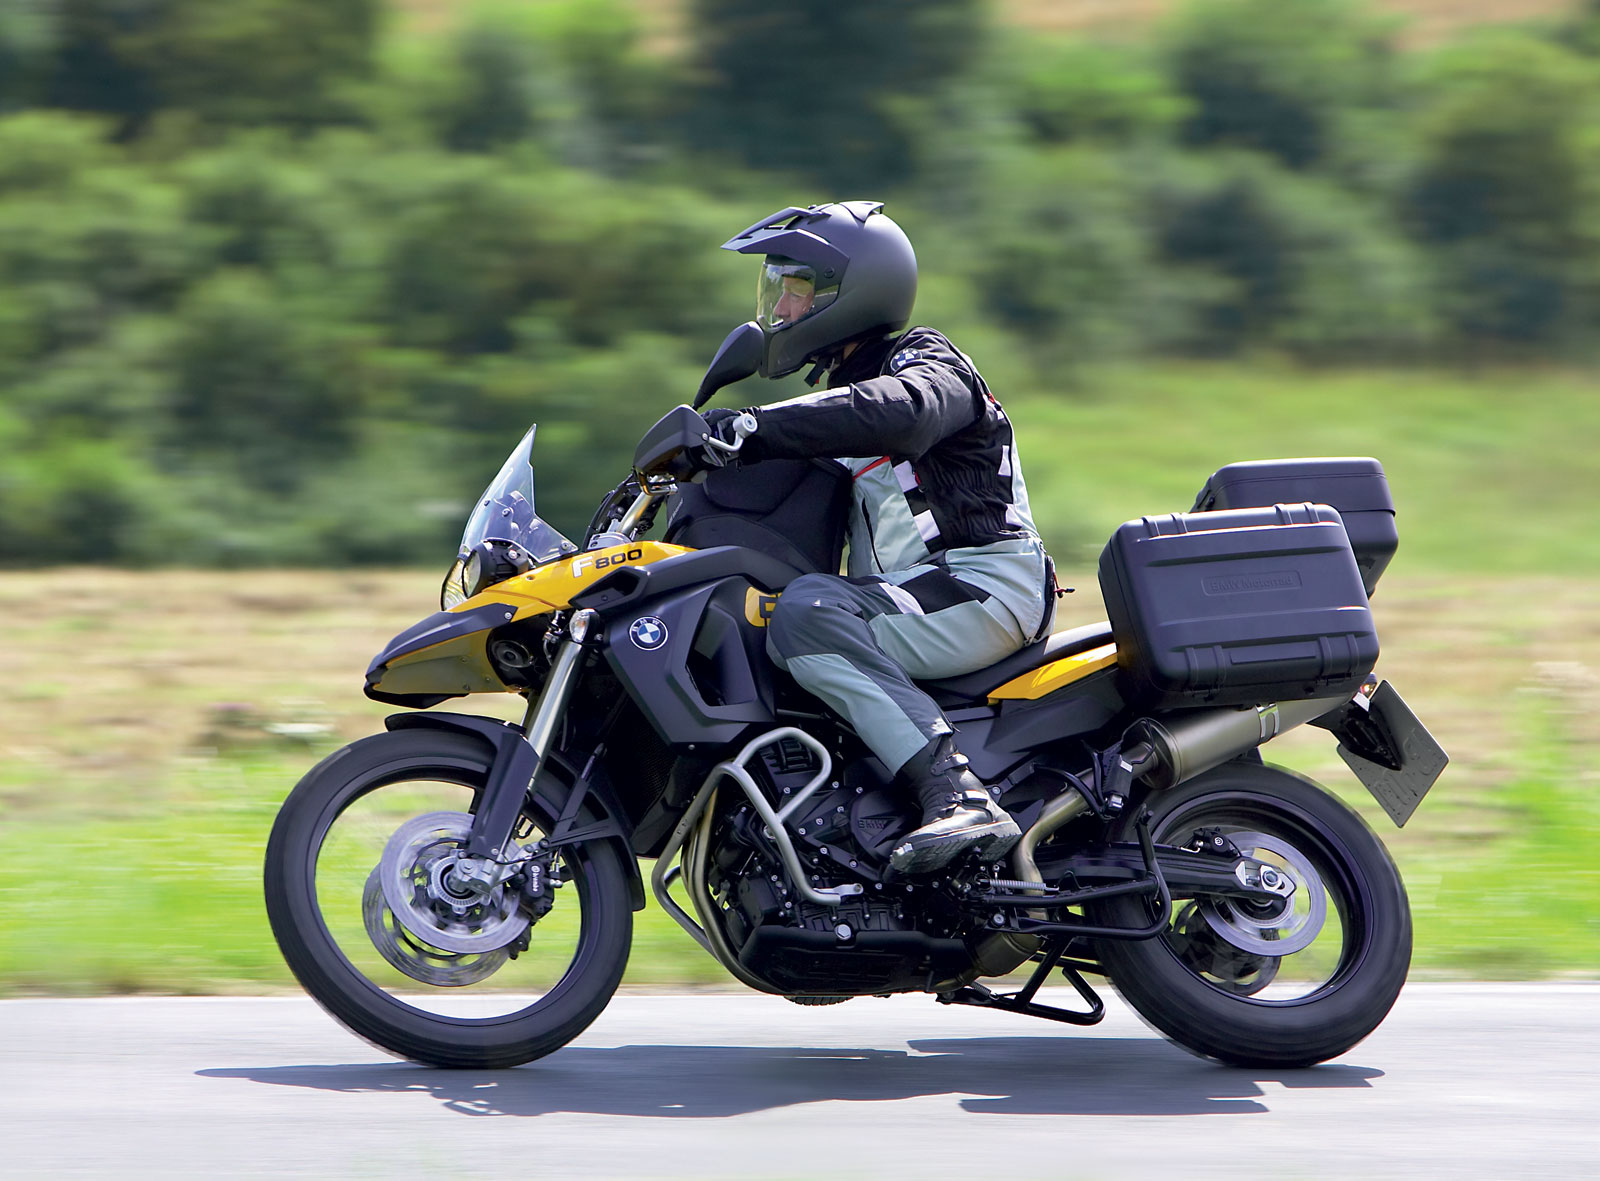 BMW F 800 GS images #148795